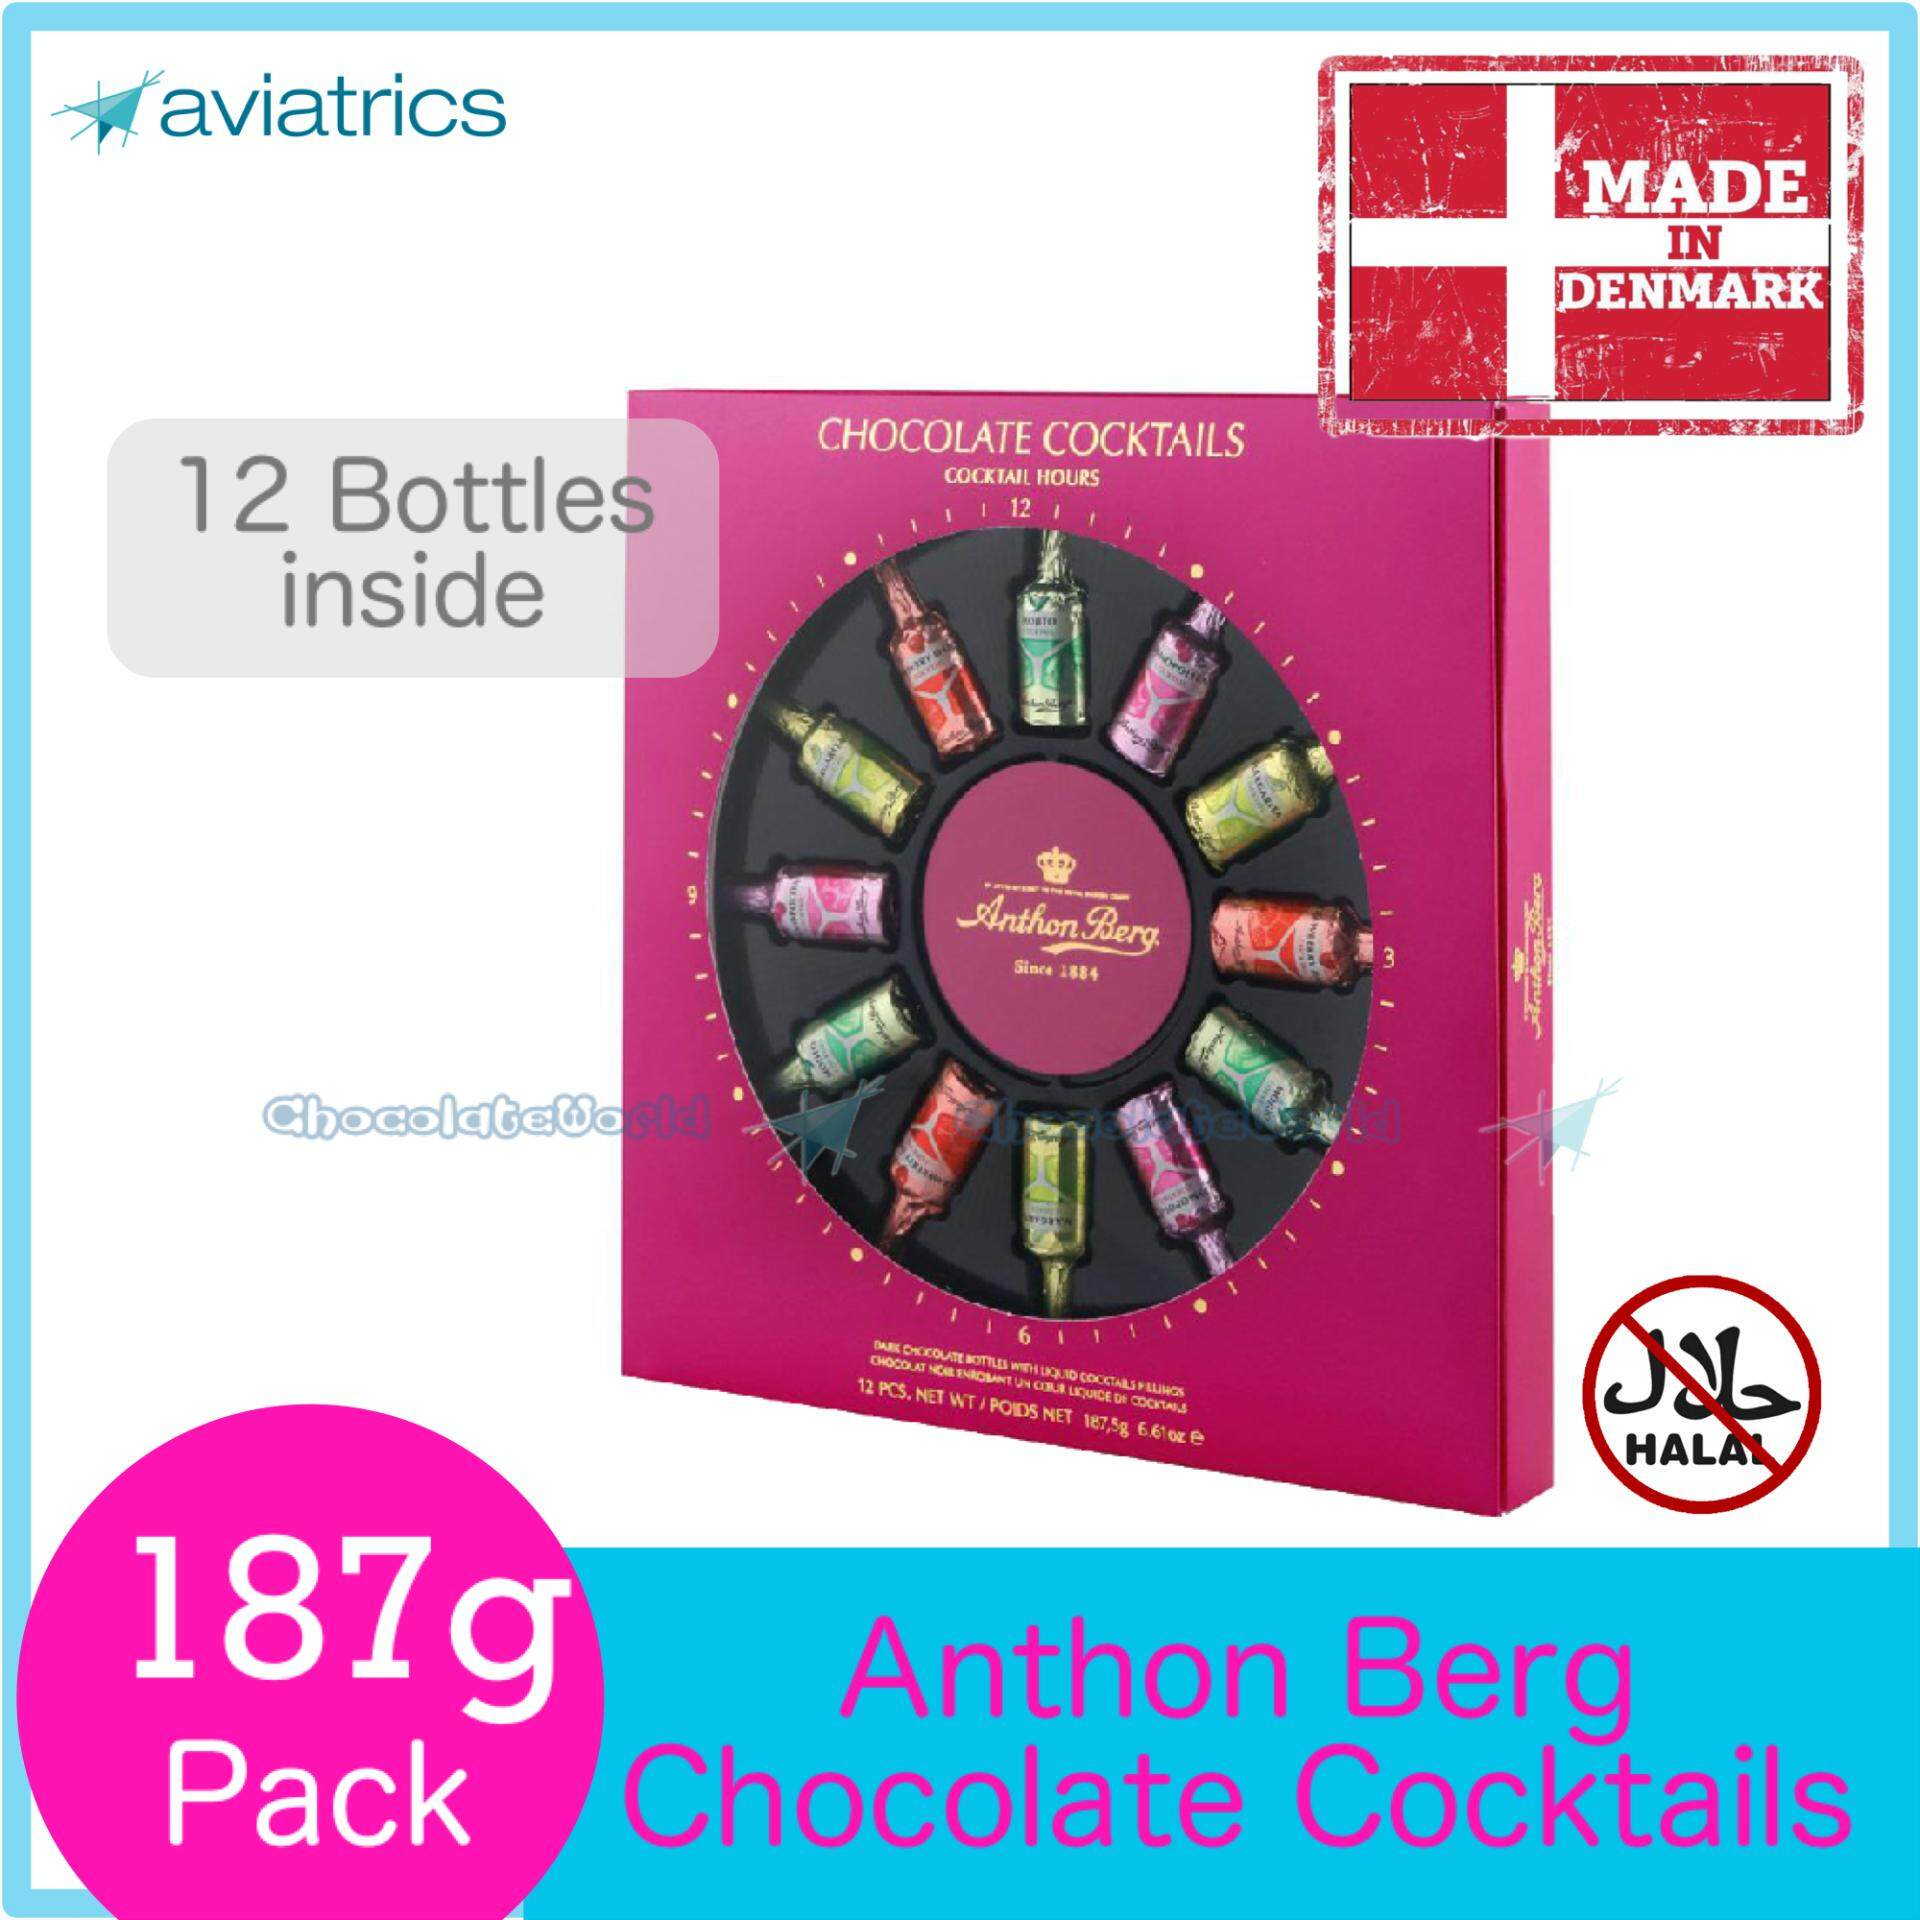 Anthon Berg Chocolate Cocktails Hours 12pc 187g (Made in Denmark)